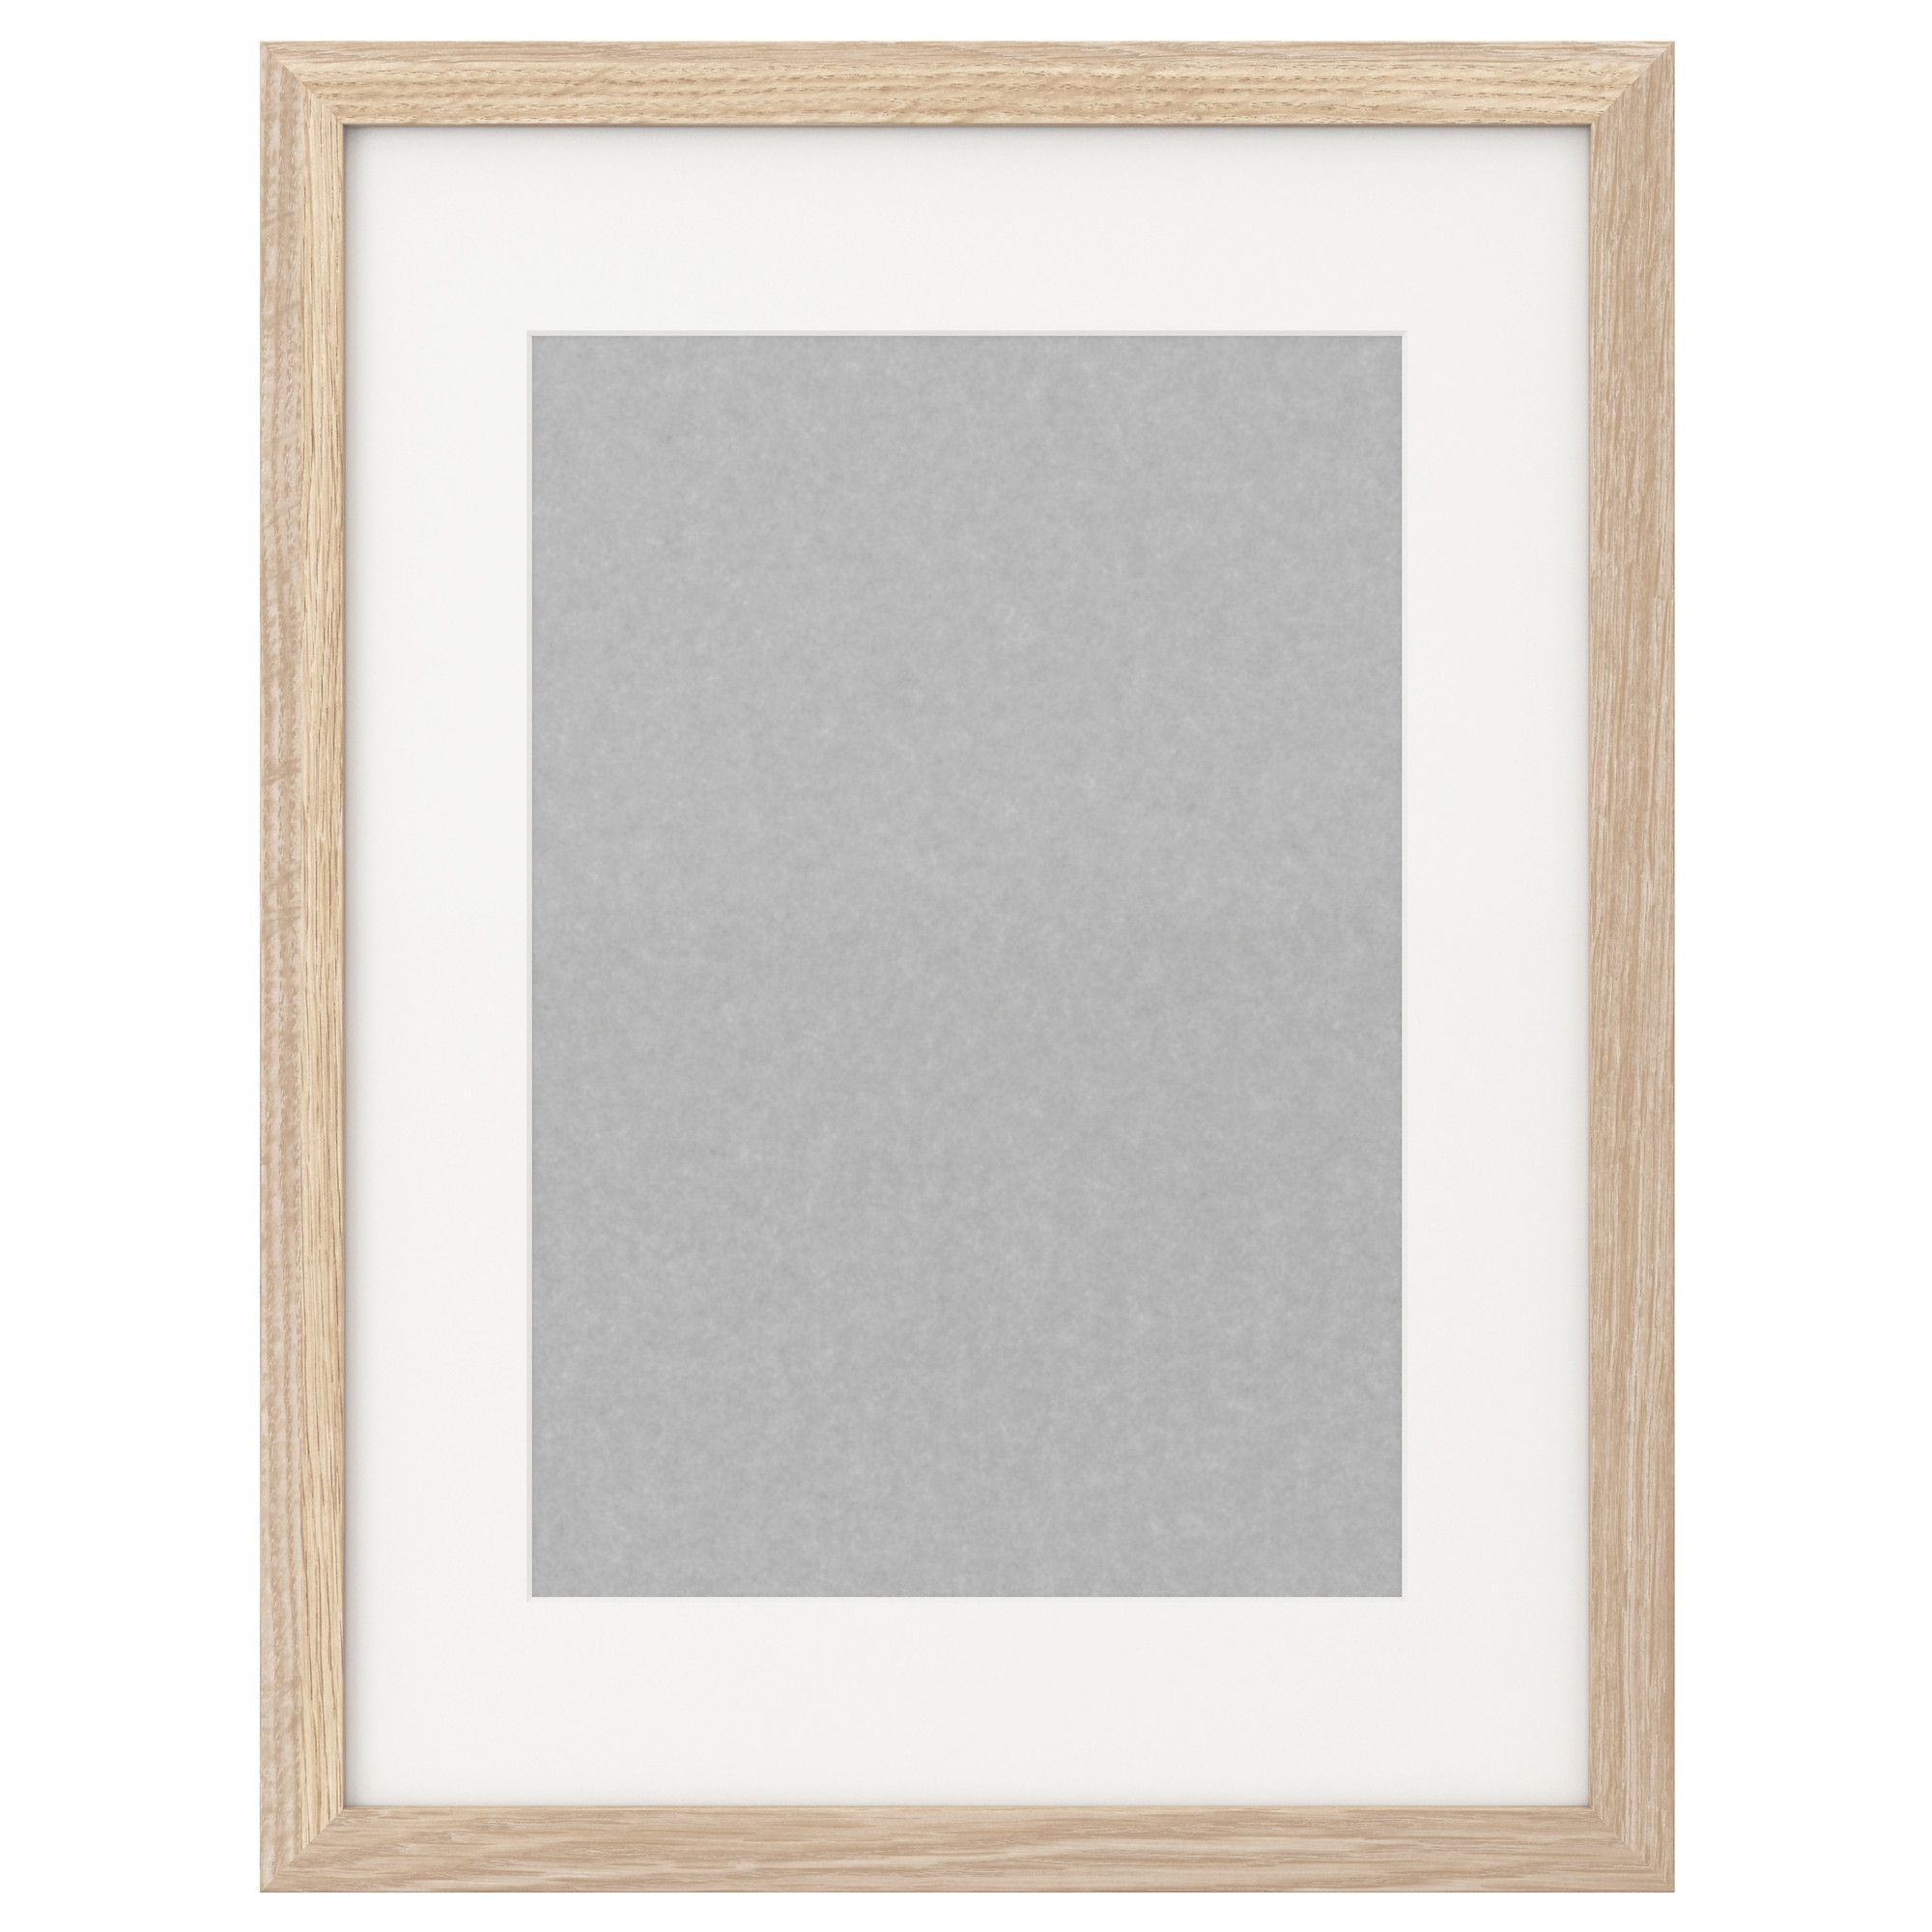 RIBBA Frame - white stained oak effect - IKEA $14.99 Size 30x40 cm ...